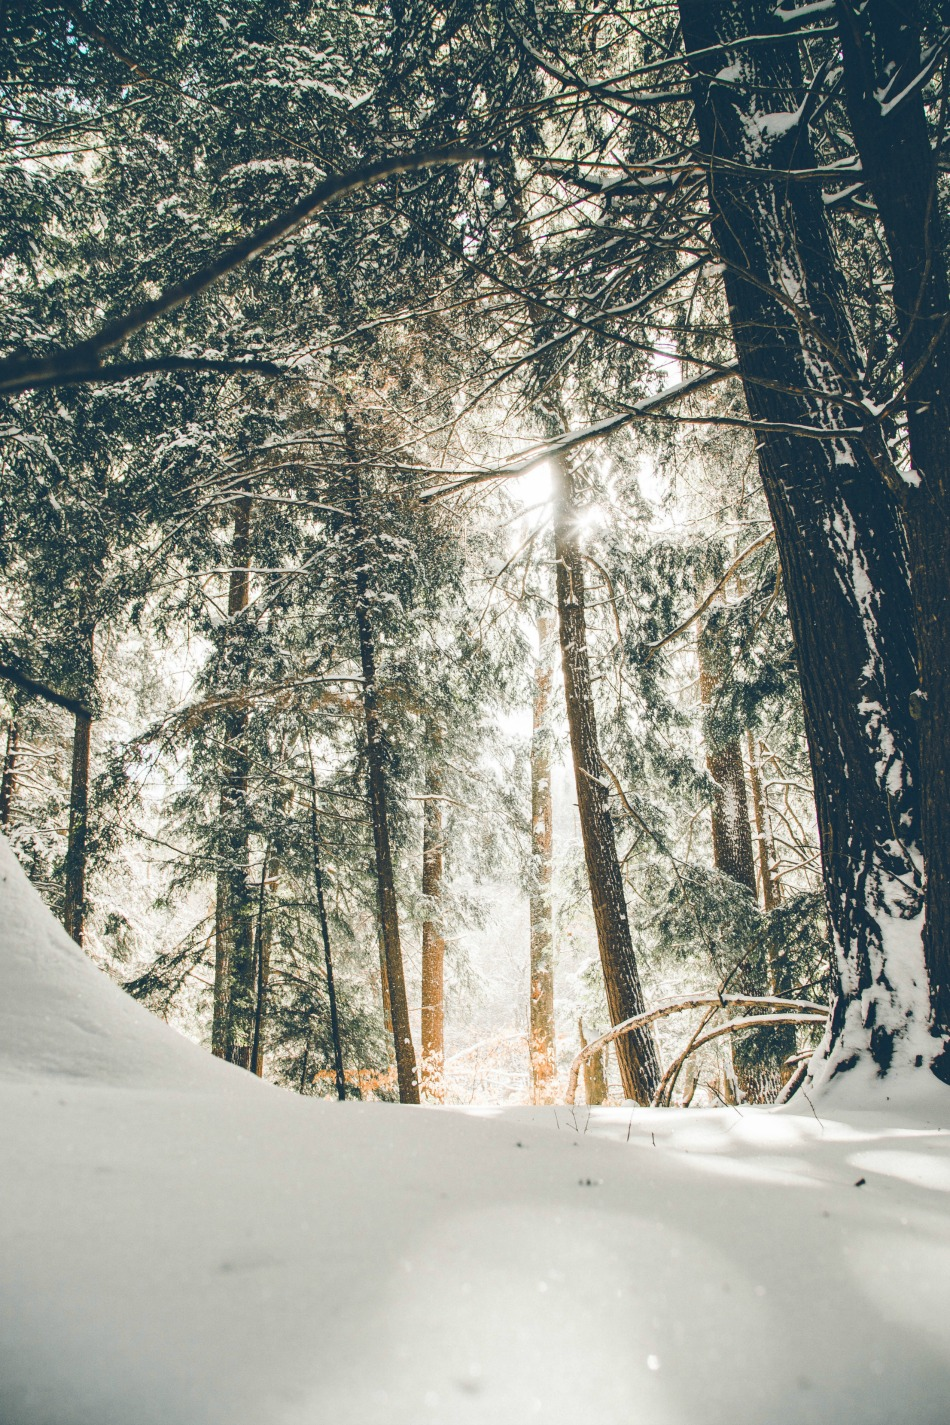 The Magic of Winter   Growing Up Herbal   Grab a cup of hot tea and stop by to read my thoughts on the magic of winter today!